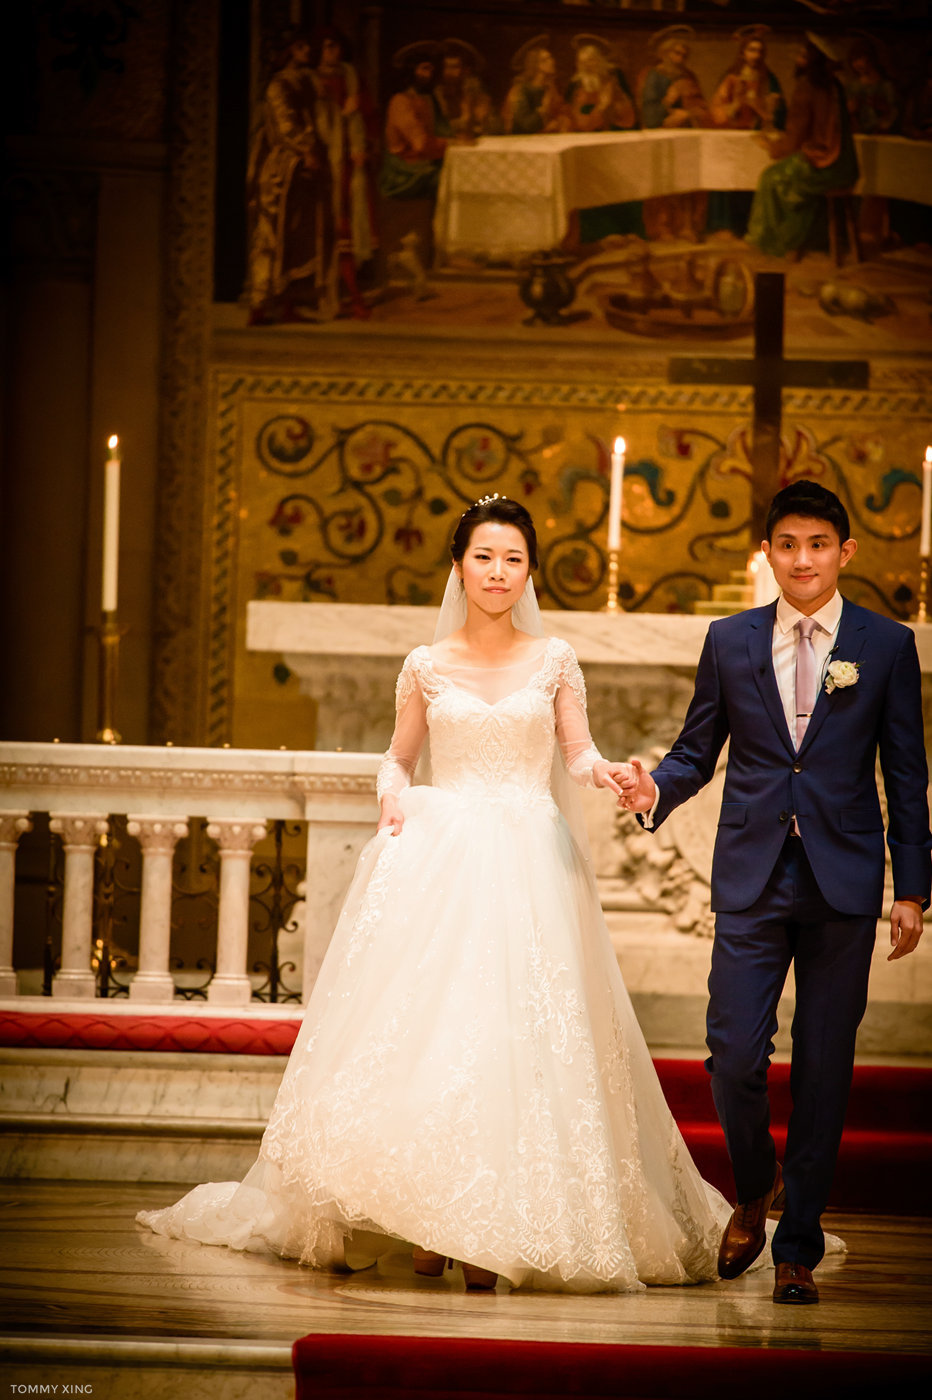 stanford memorial church wedding 旧金山湾区斯坦福教堂婚礼 Tommy Xing Photography 079.jpg